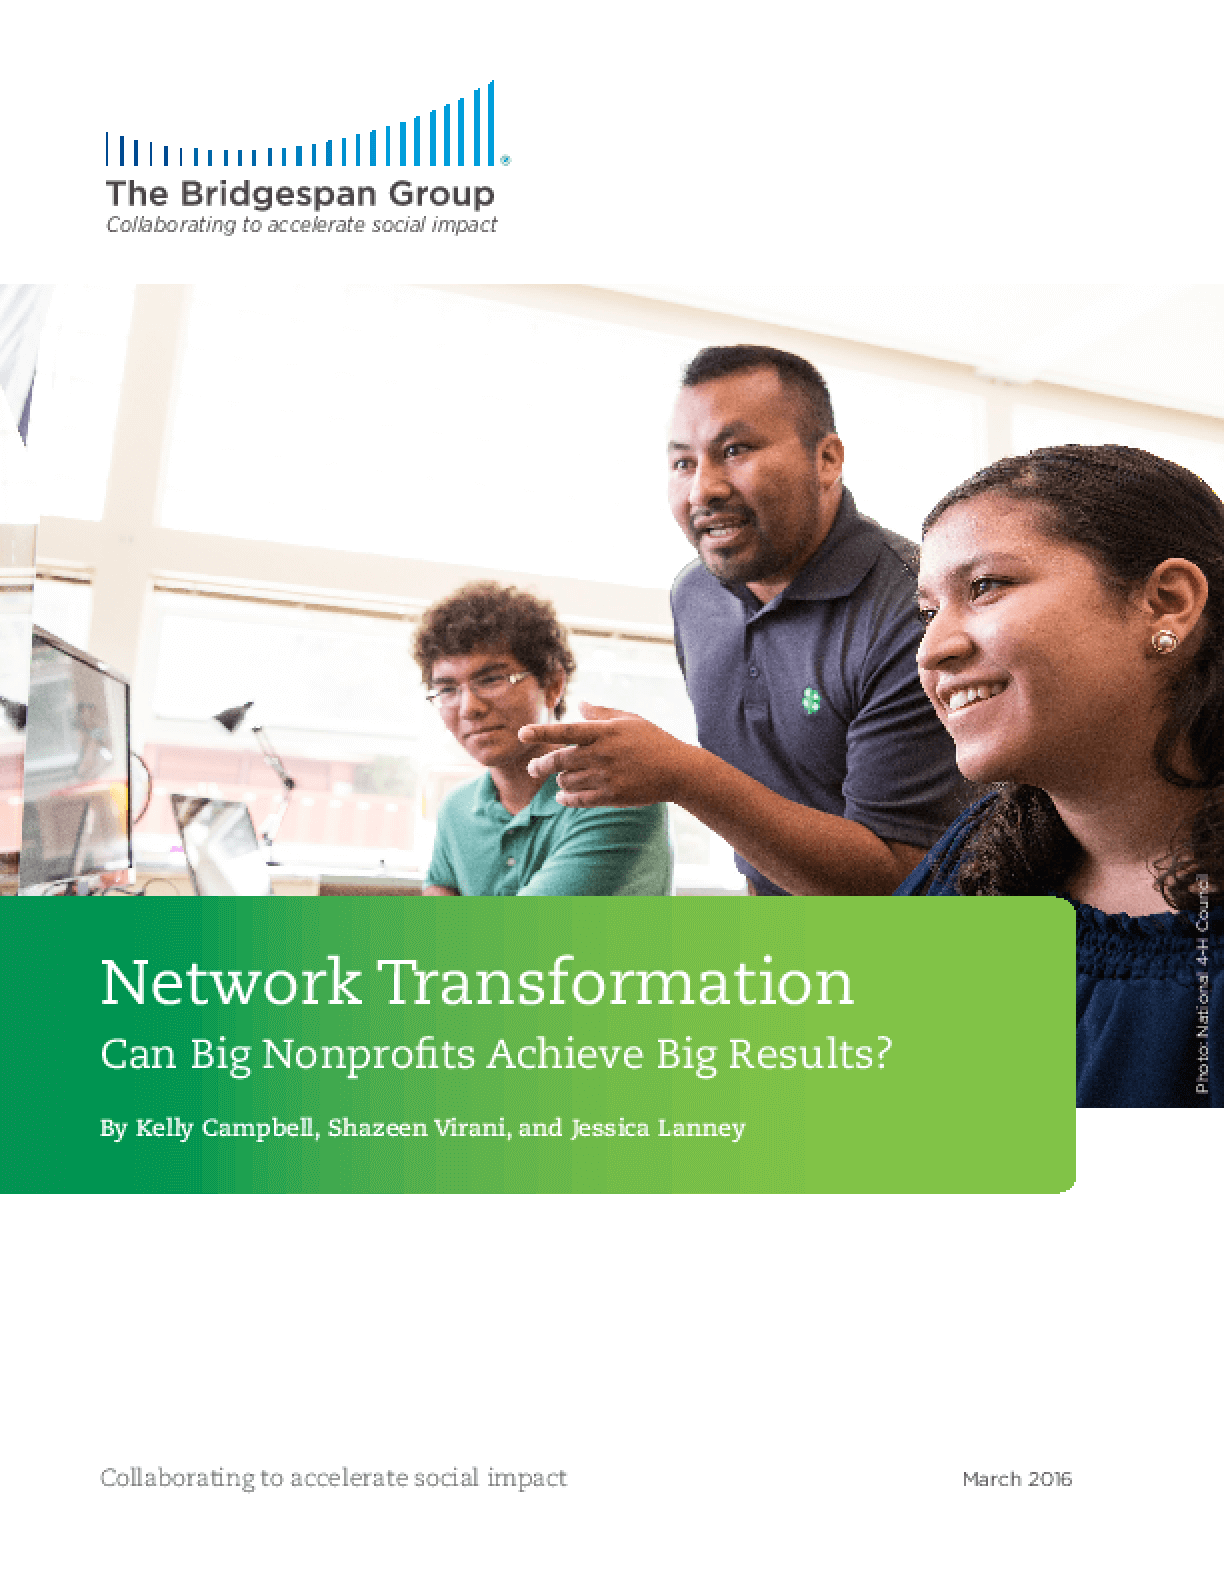 Network Transformation: Can Big Nonprofits Achieve Big Results?